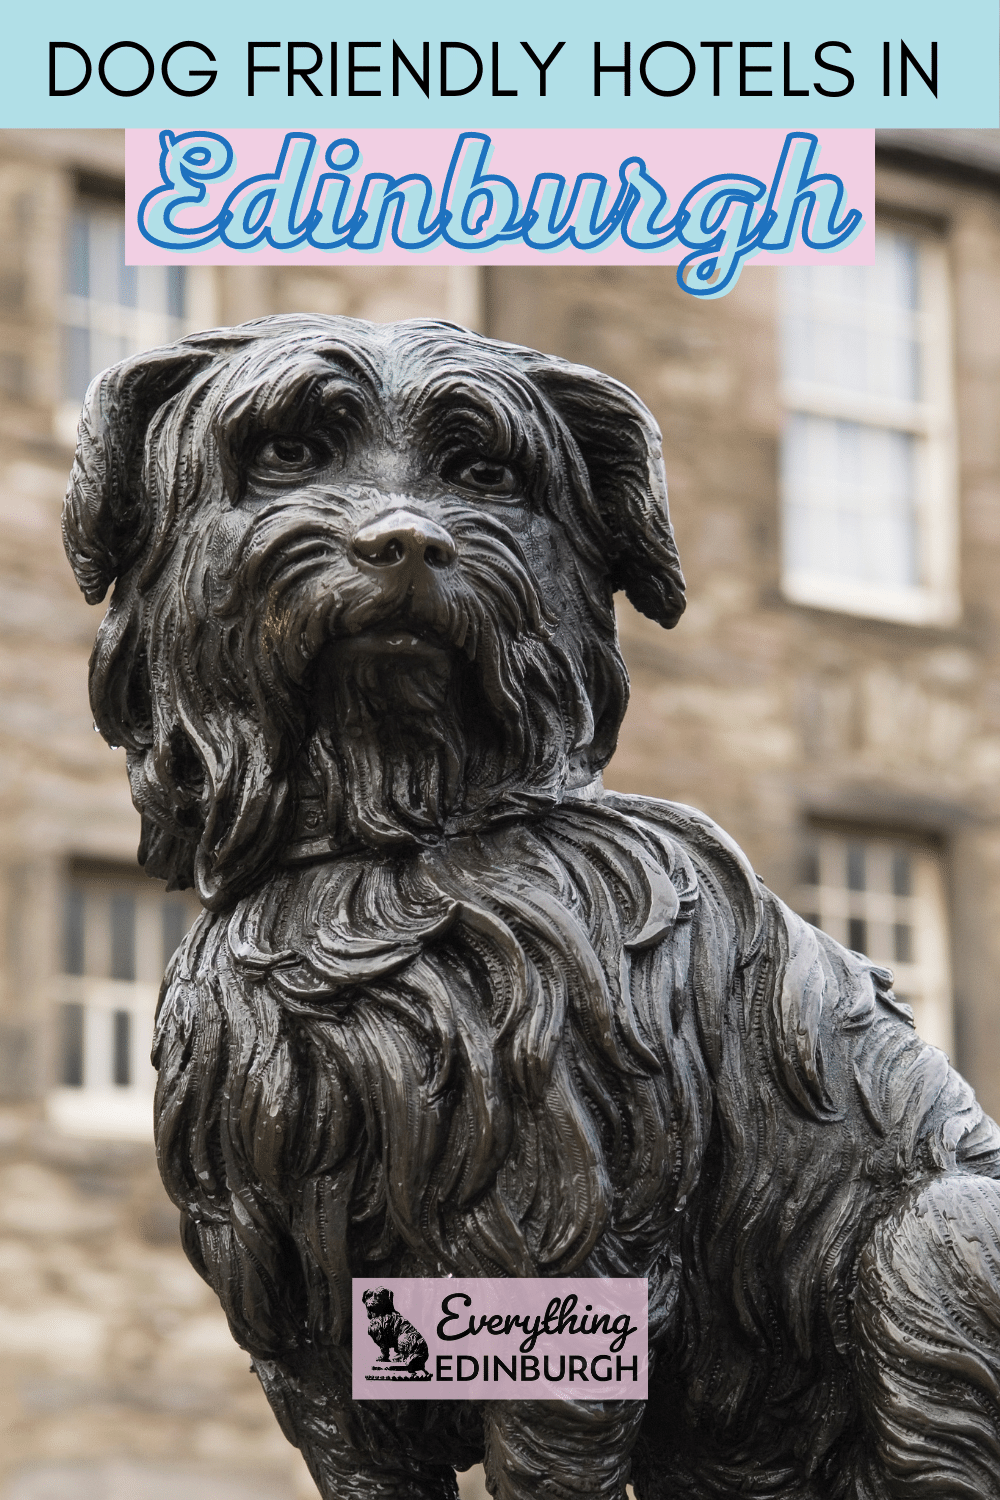 Searching for dog-friendly hotels in Edinburgh? This guide shares the best furry friend accommodation in the city centre and beyond. Pack your pooch on your Edinburgh visit, hit the parks and beaches and warm up by the fire at Edinburgh's dog-friendly pubs.